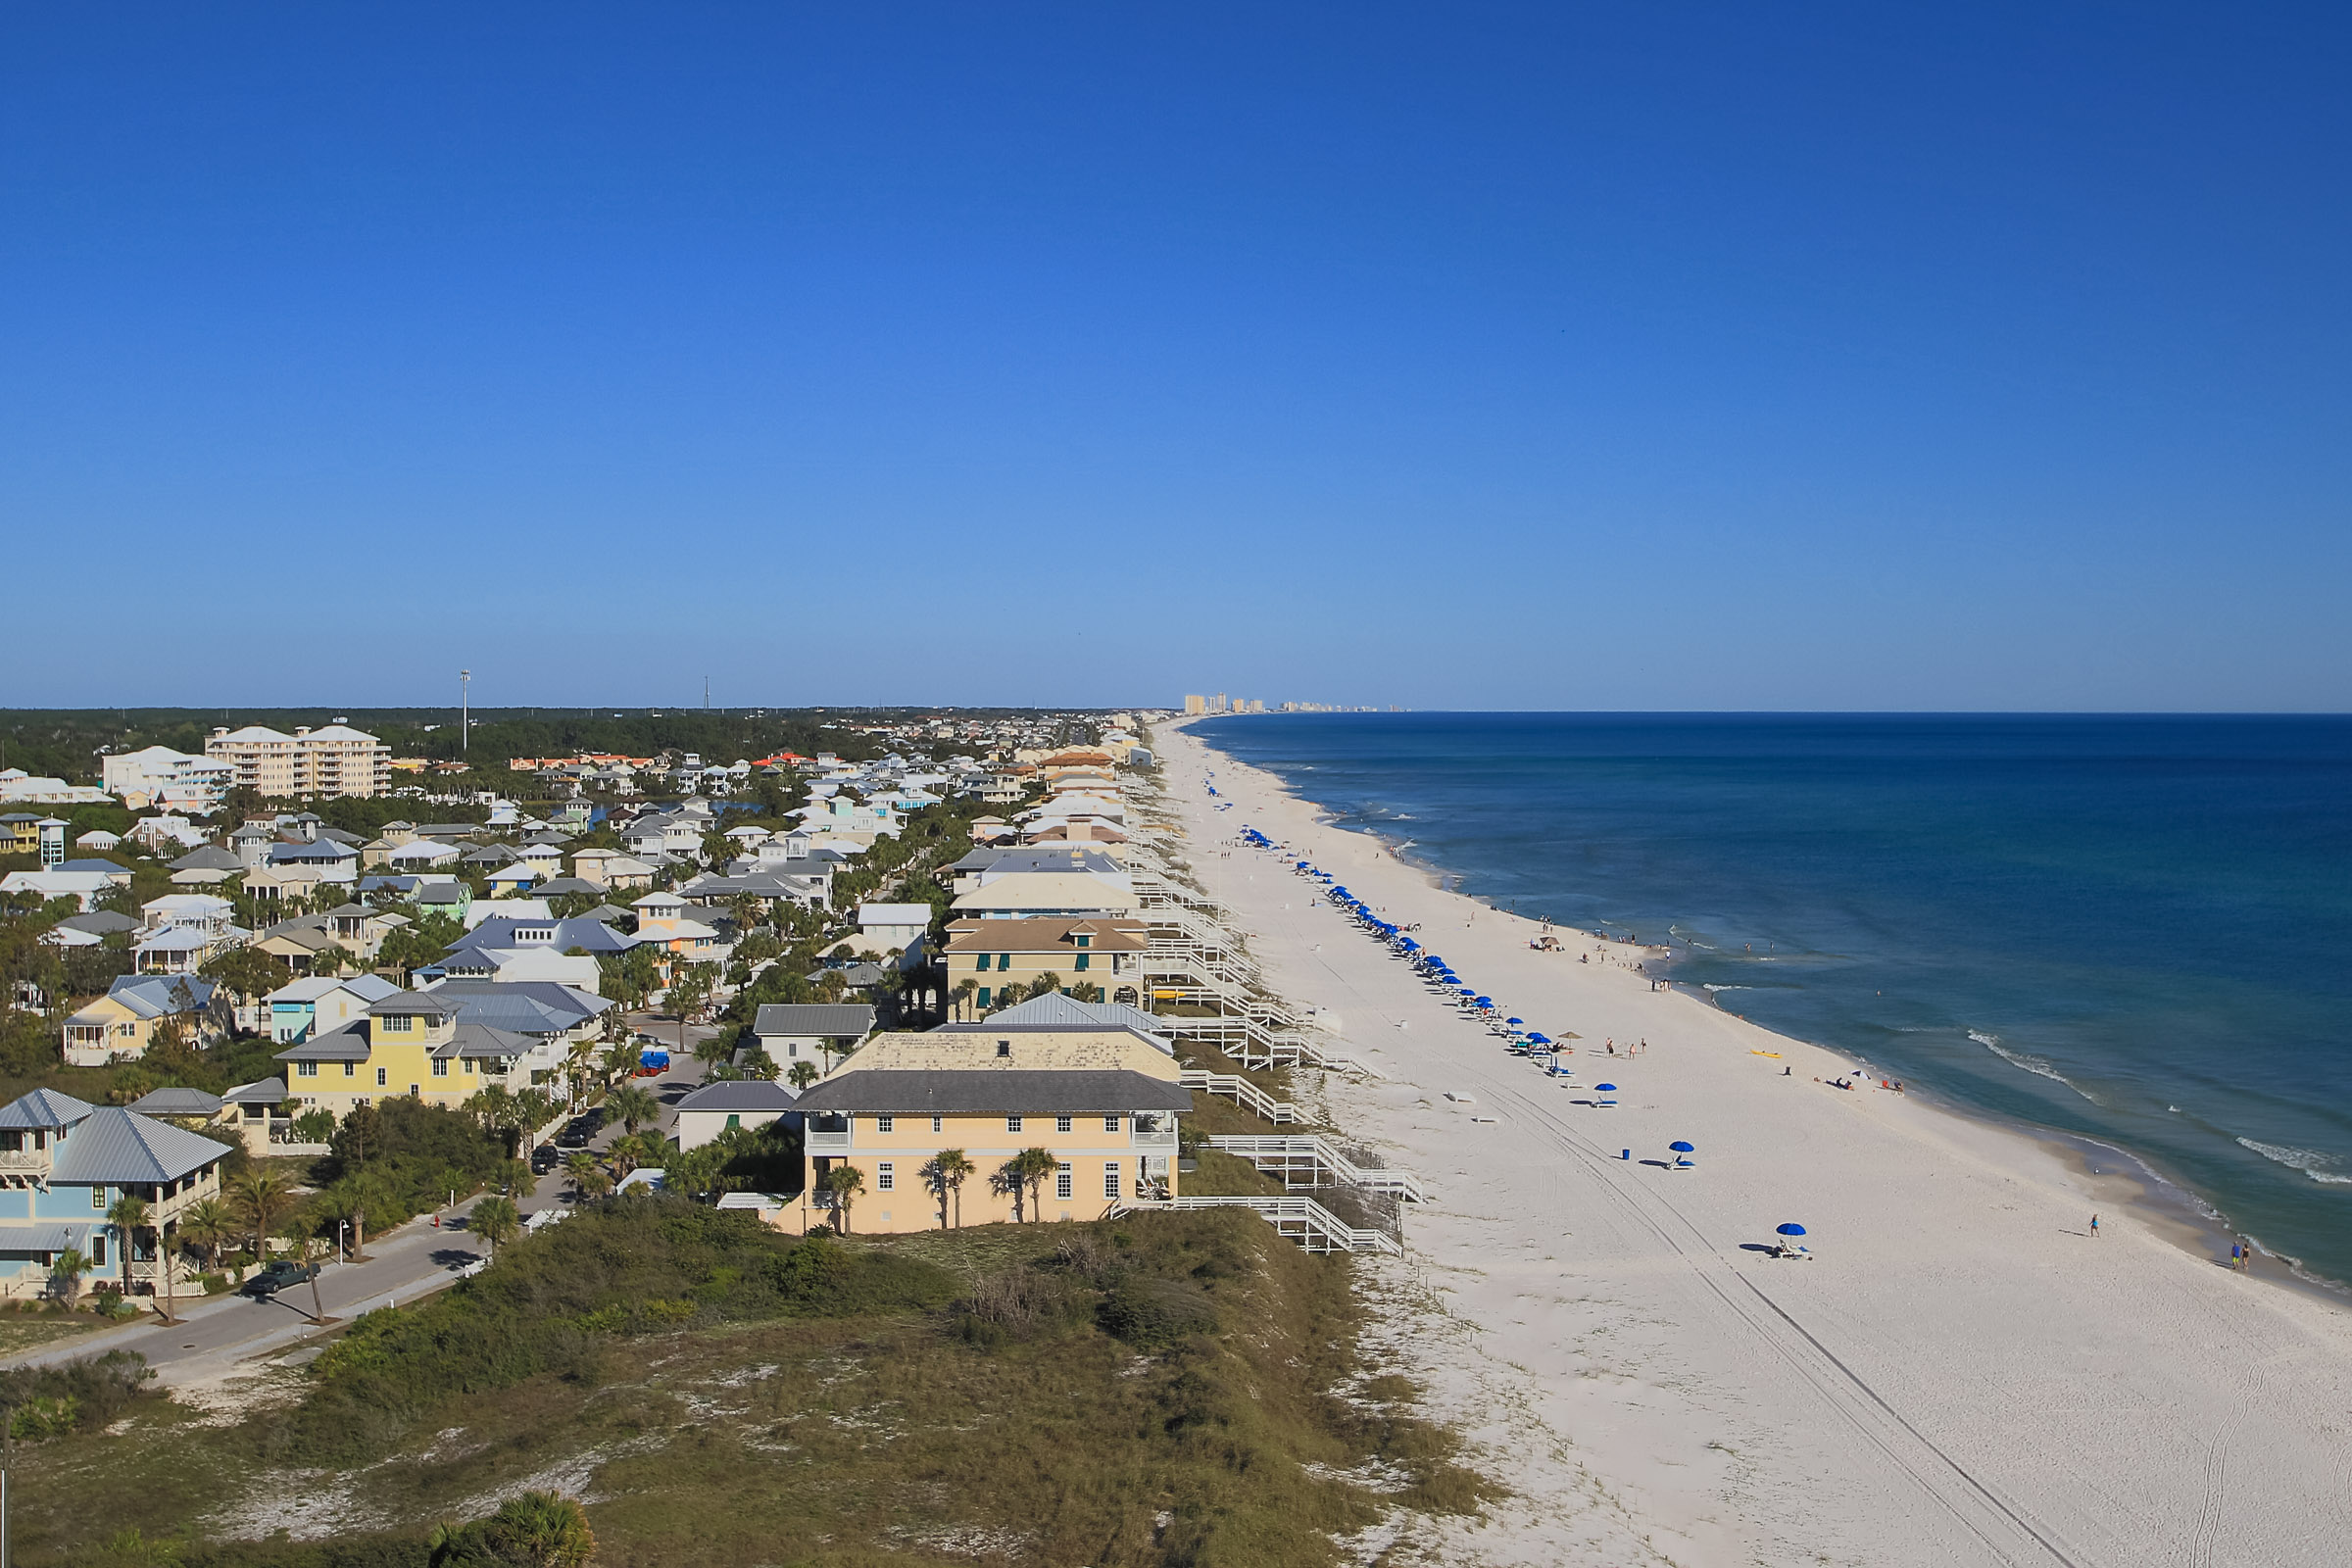 Vrbo Condos At Edgewater Beach Resort In Panama City Beach Florida Search Results Ask Home